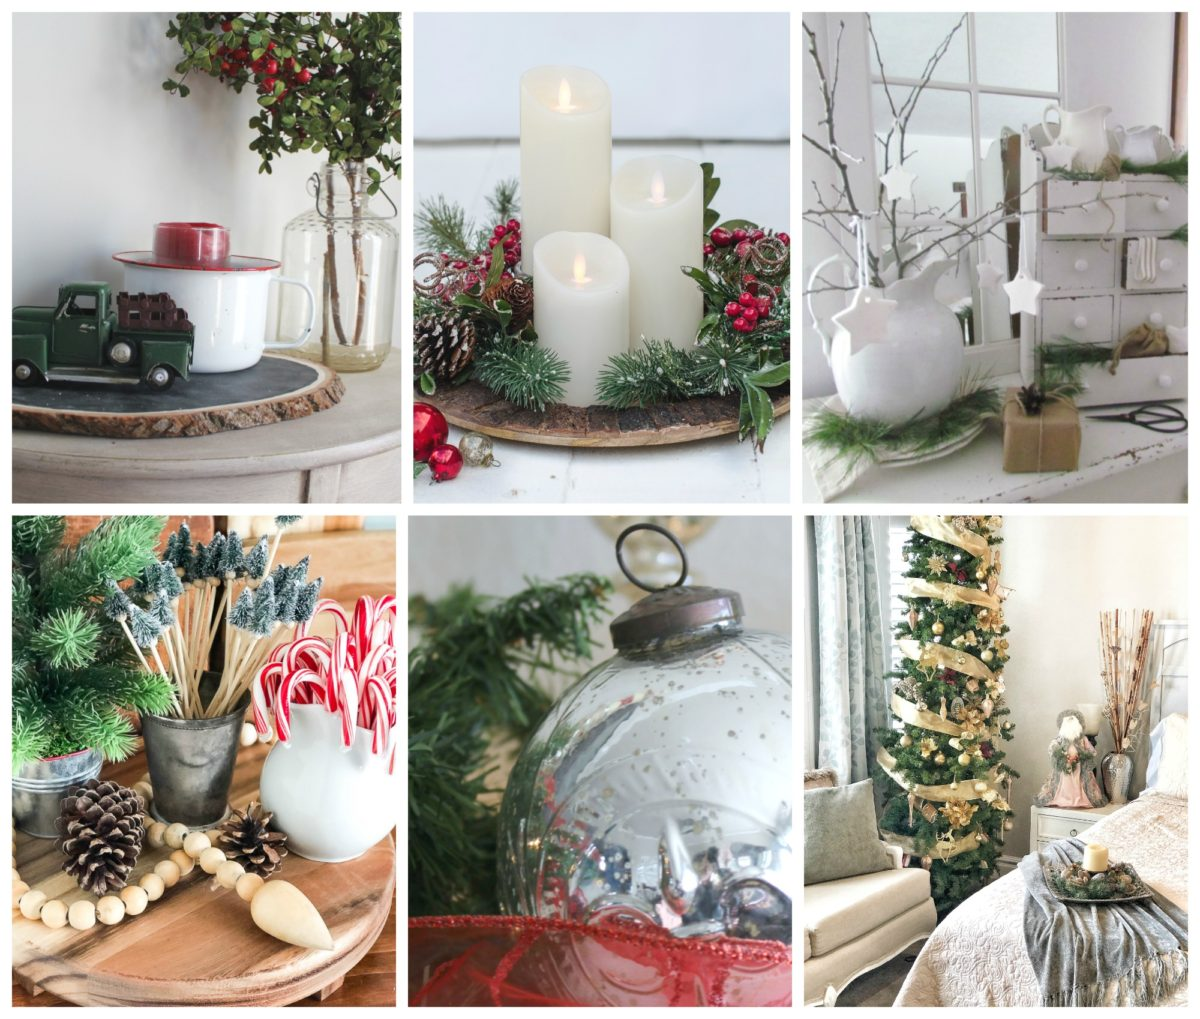 Creative Home Decor Youtube: Christmas Vignettes In The Dining Room